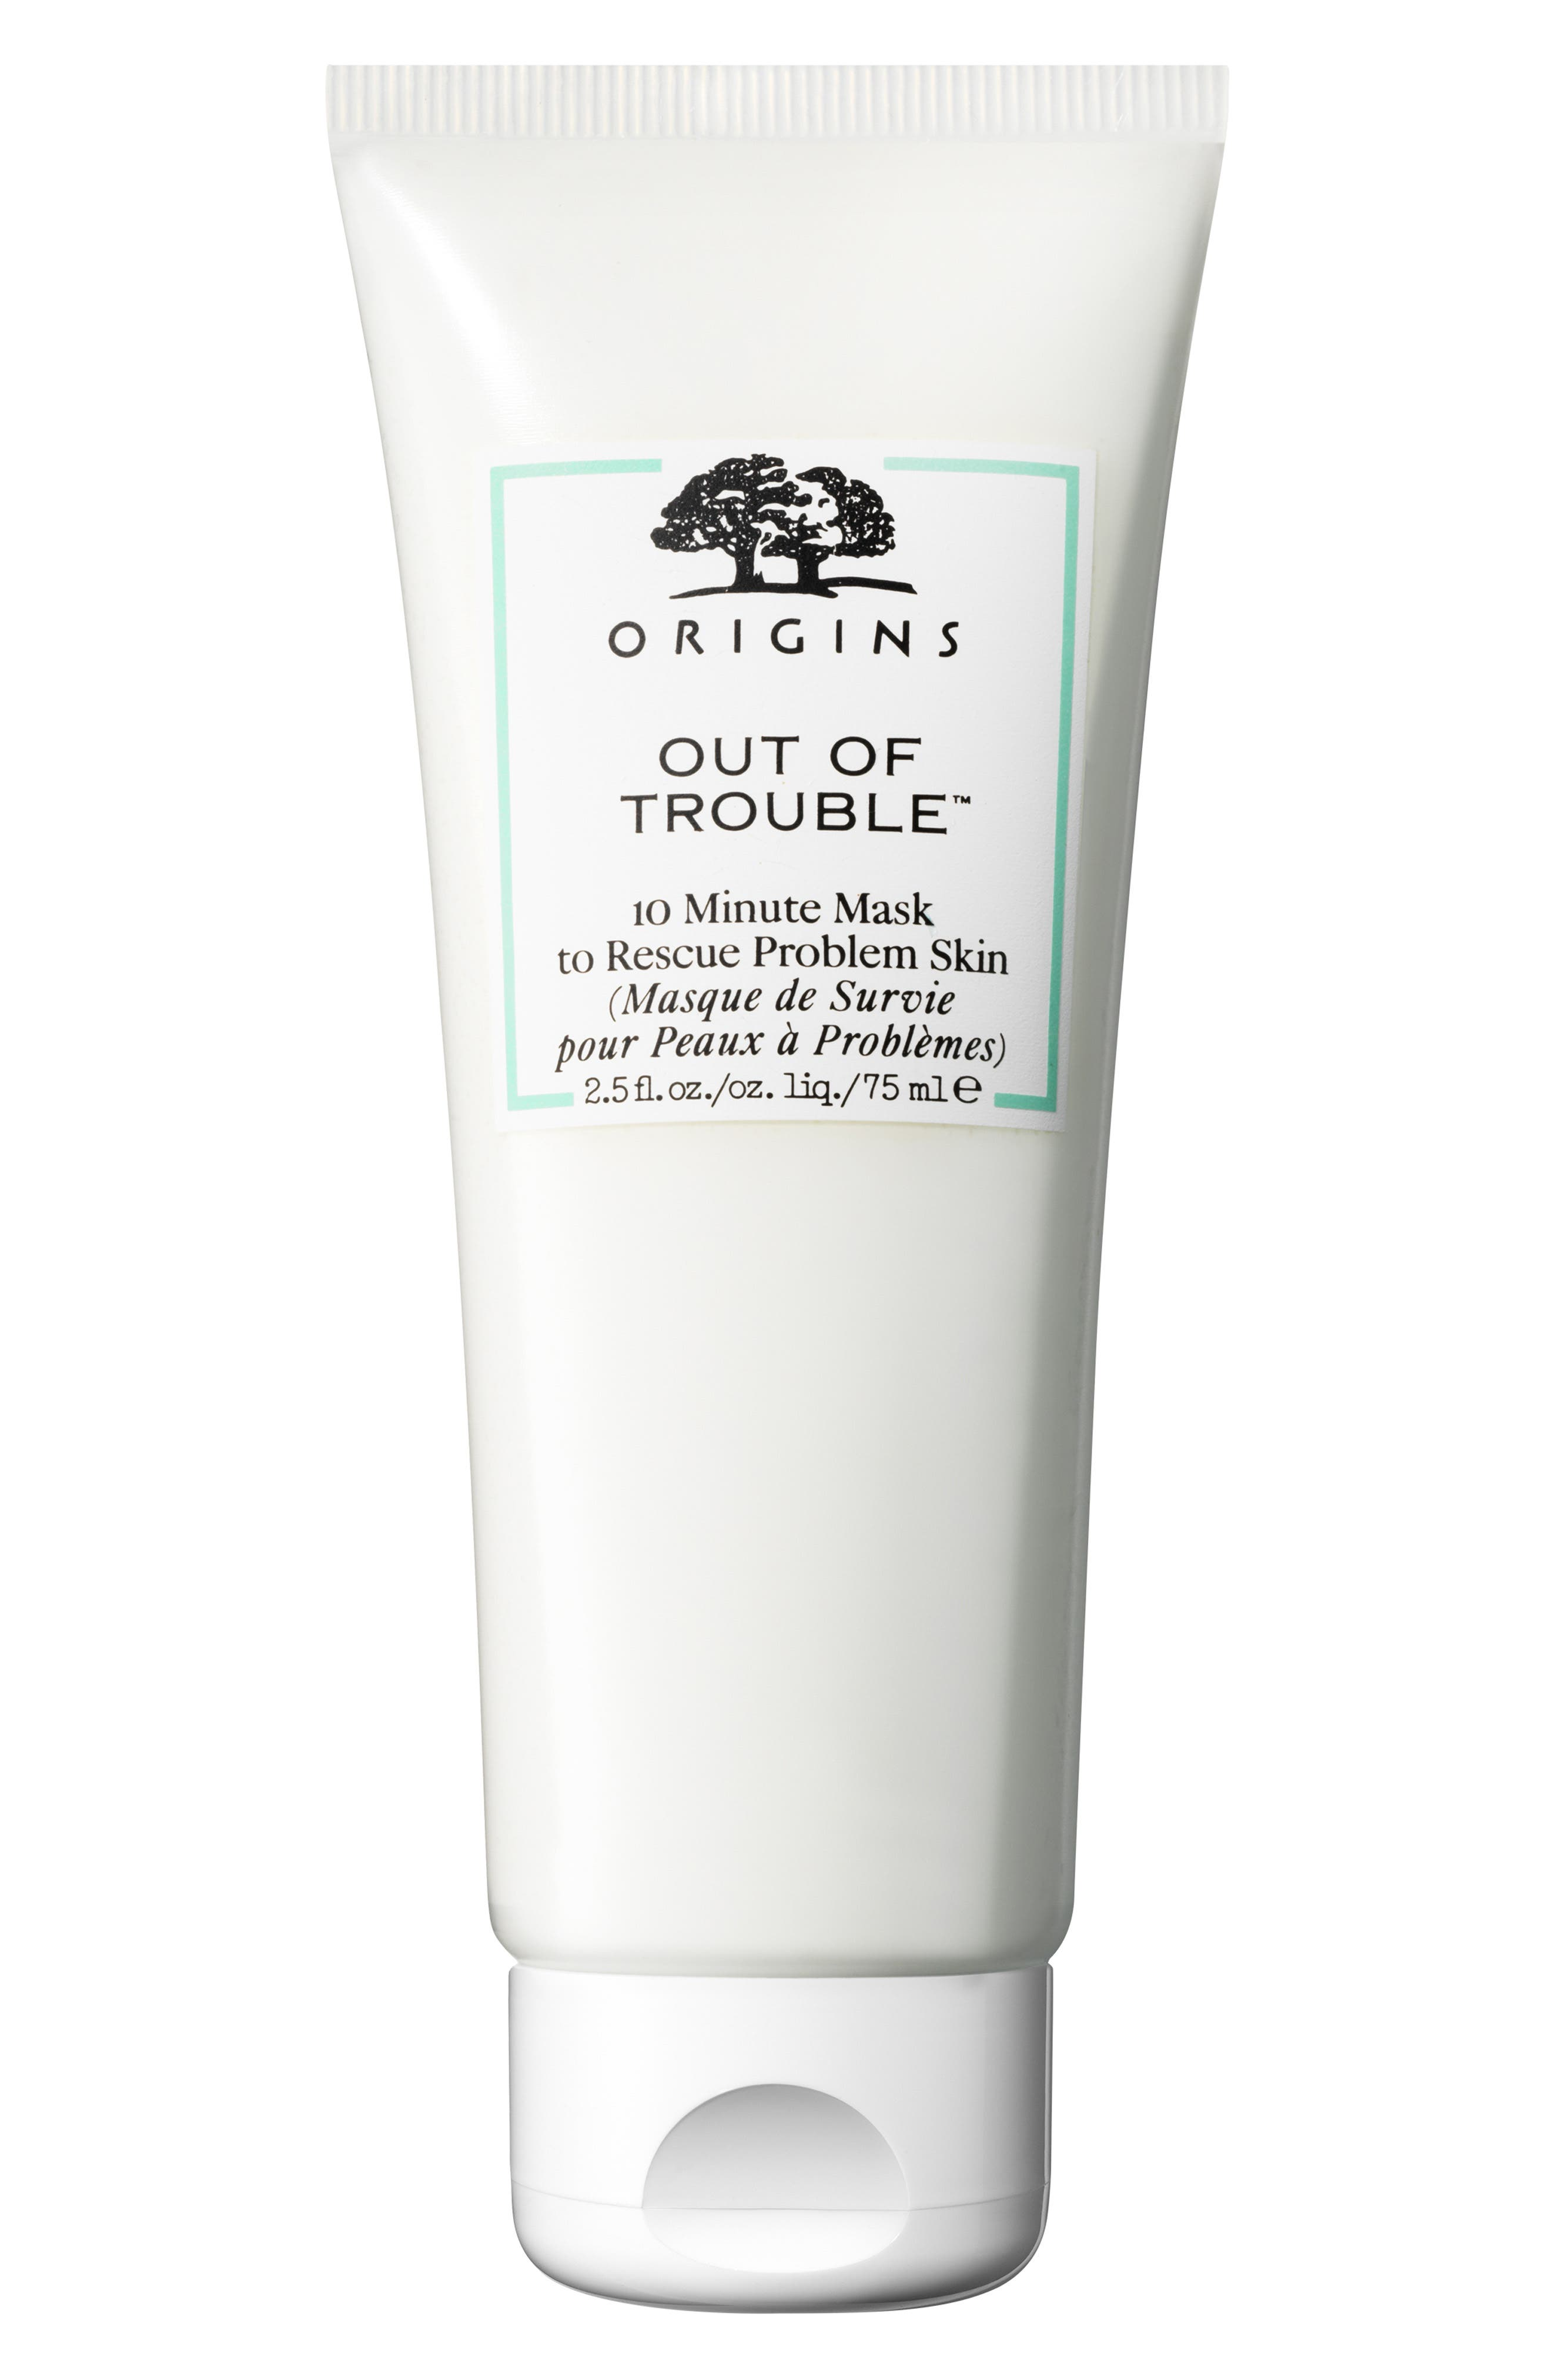 Out of Trouble™ 10 Minute Mask to Rescue Problem Skin | Nordstrom